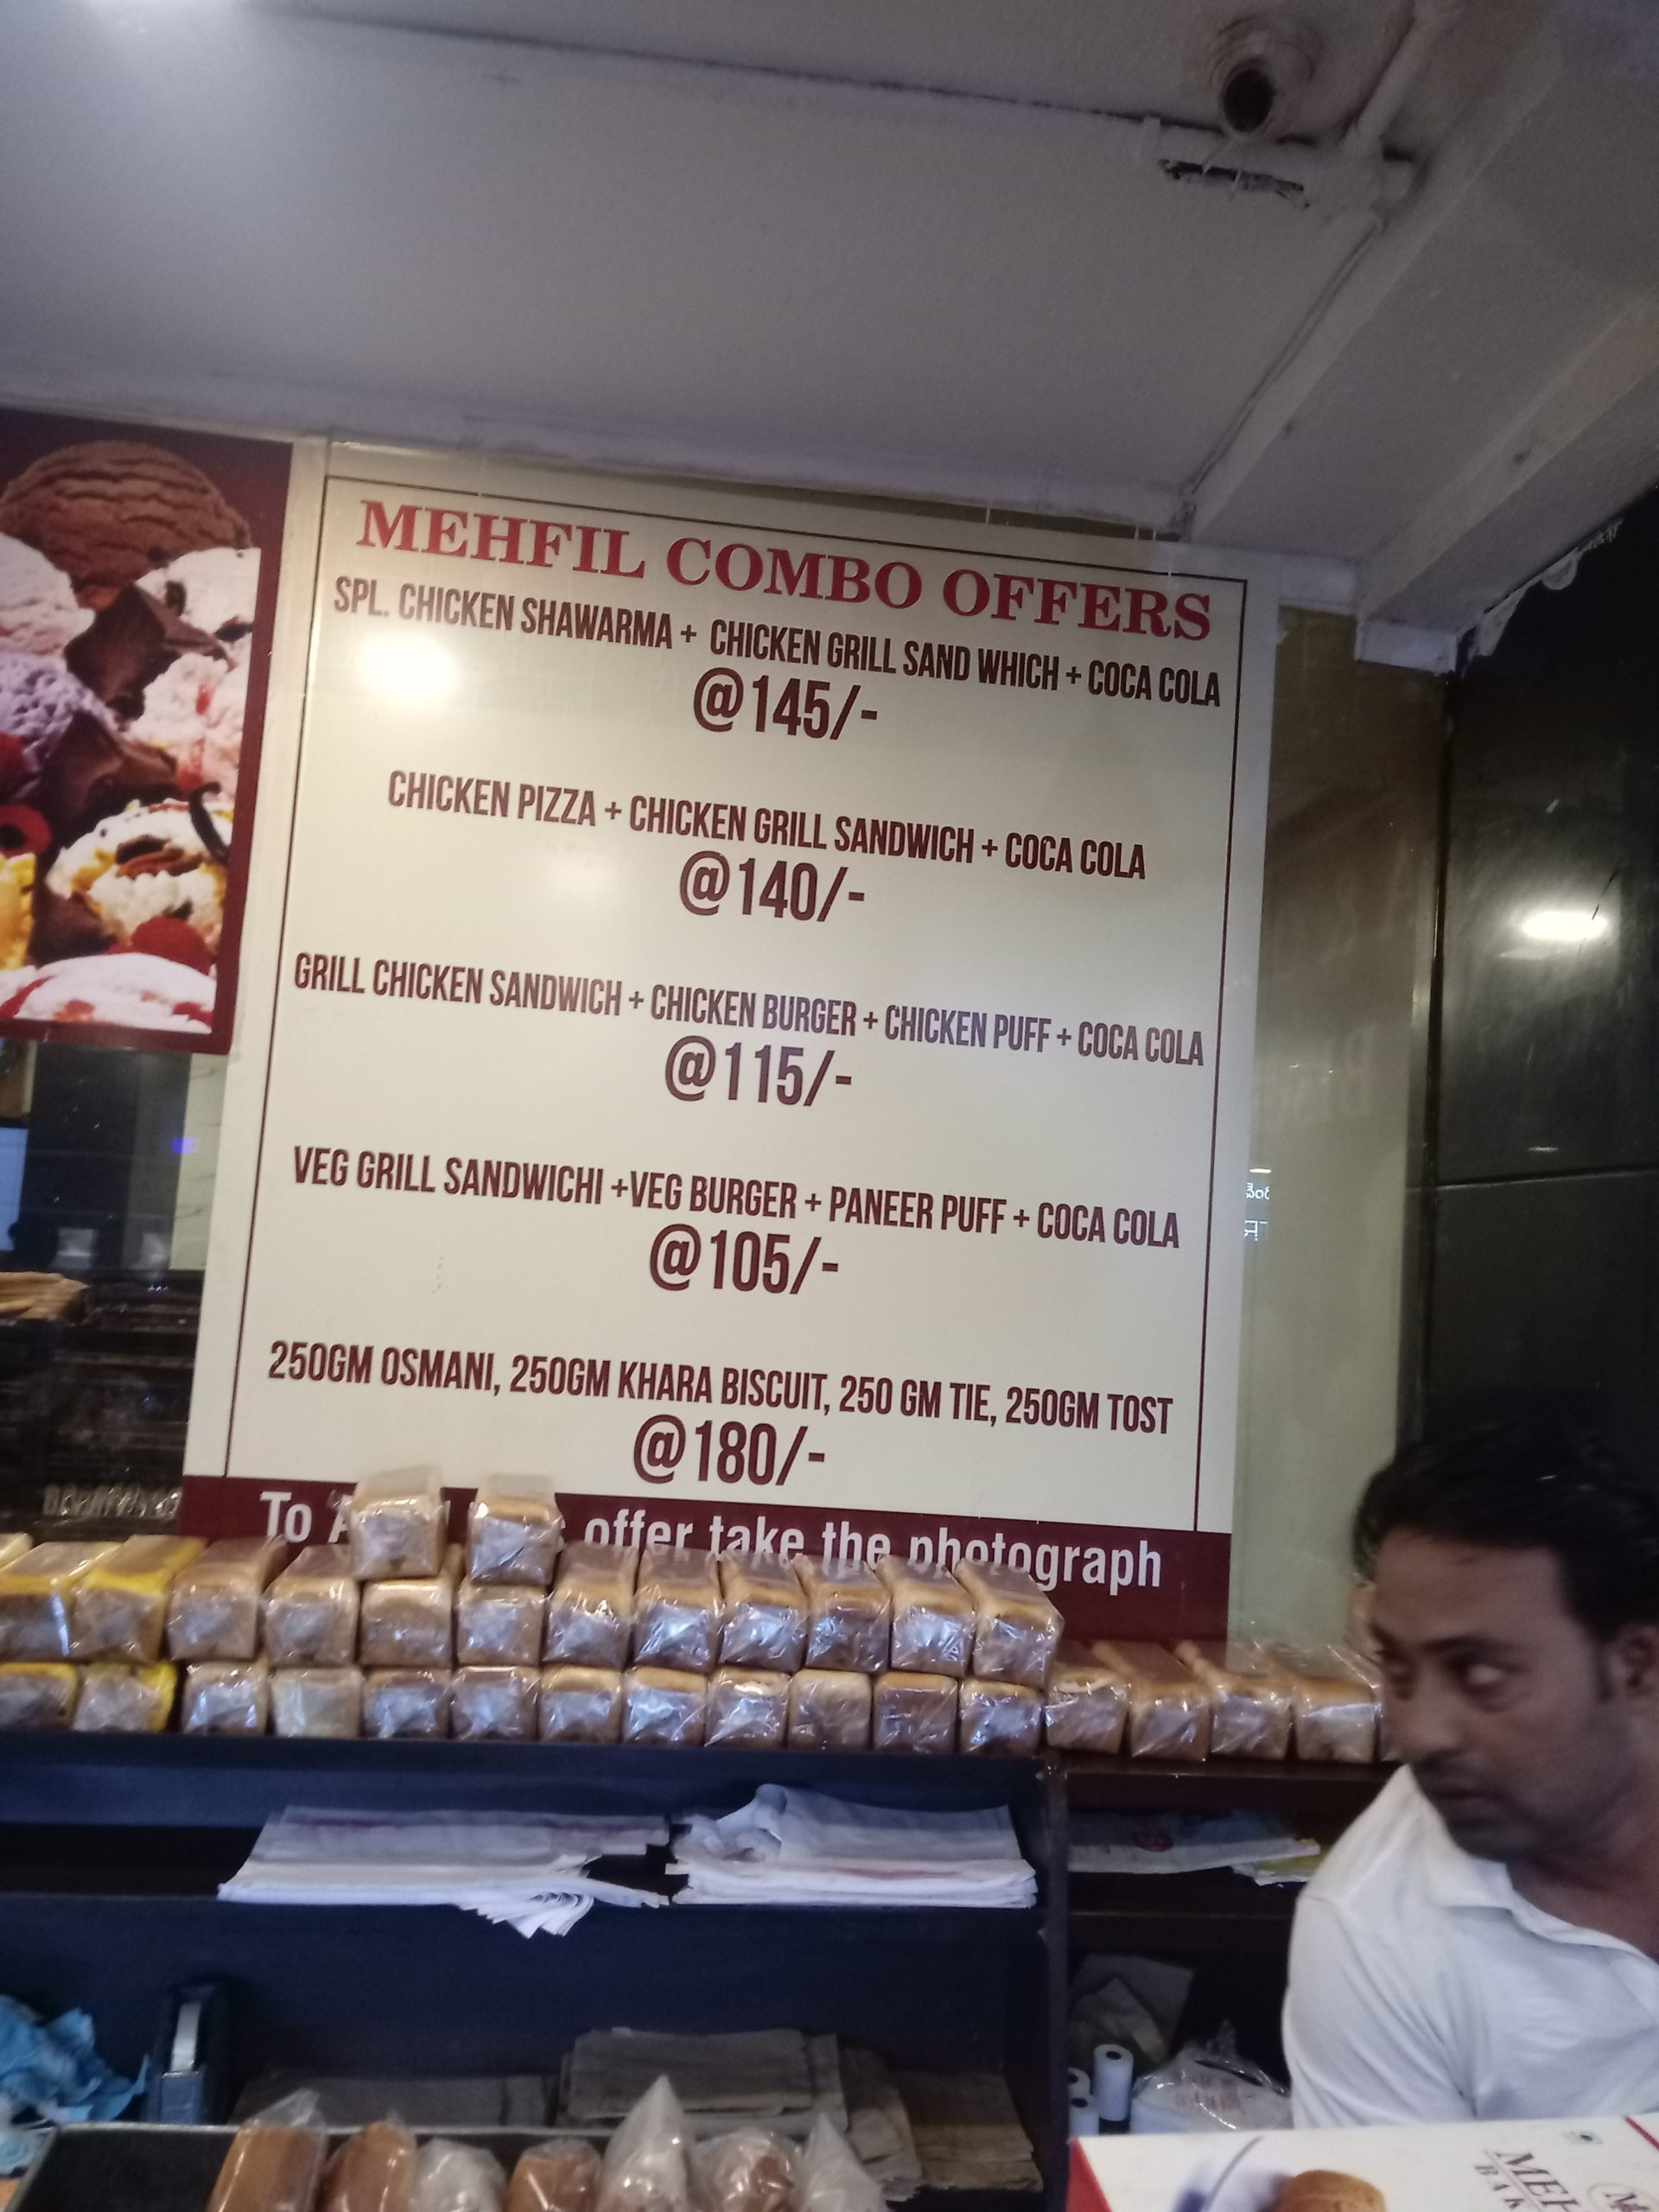 Mehfil Cafe and Restaurants Combo Offers